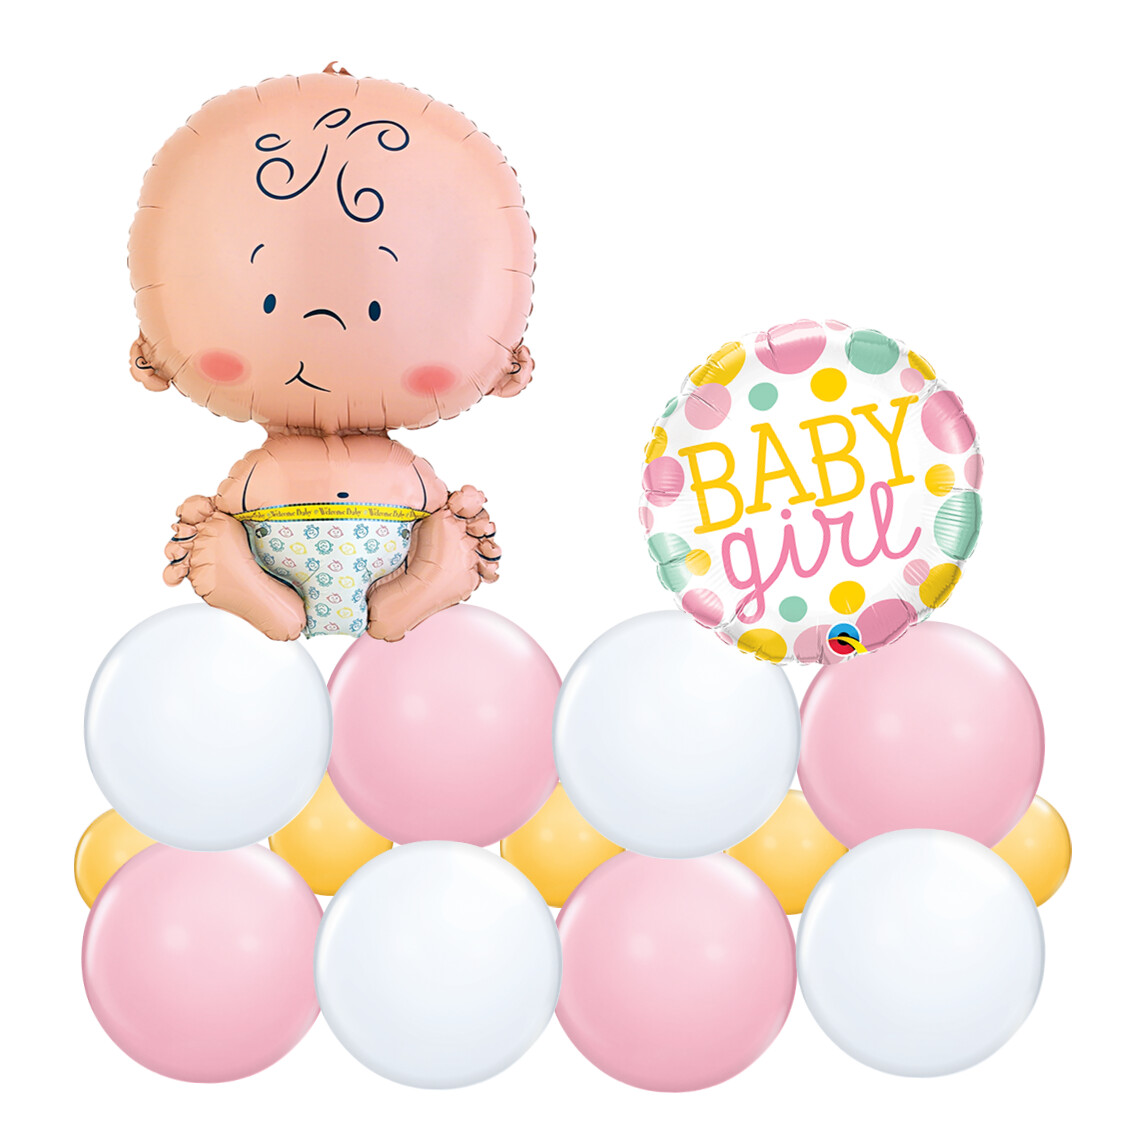 Baby Girl Balloon Marquee for Baby Shower, air filled long lasting